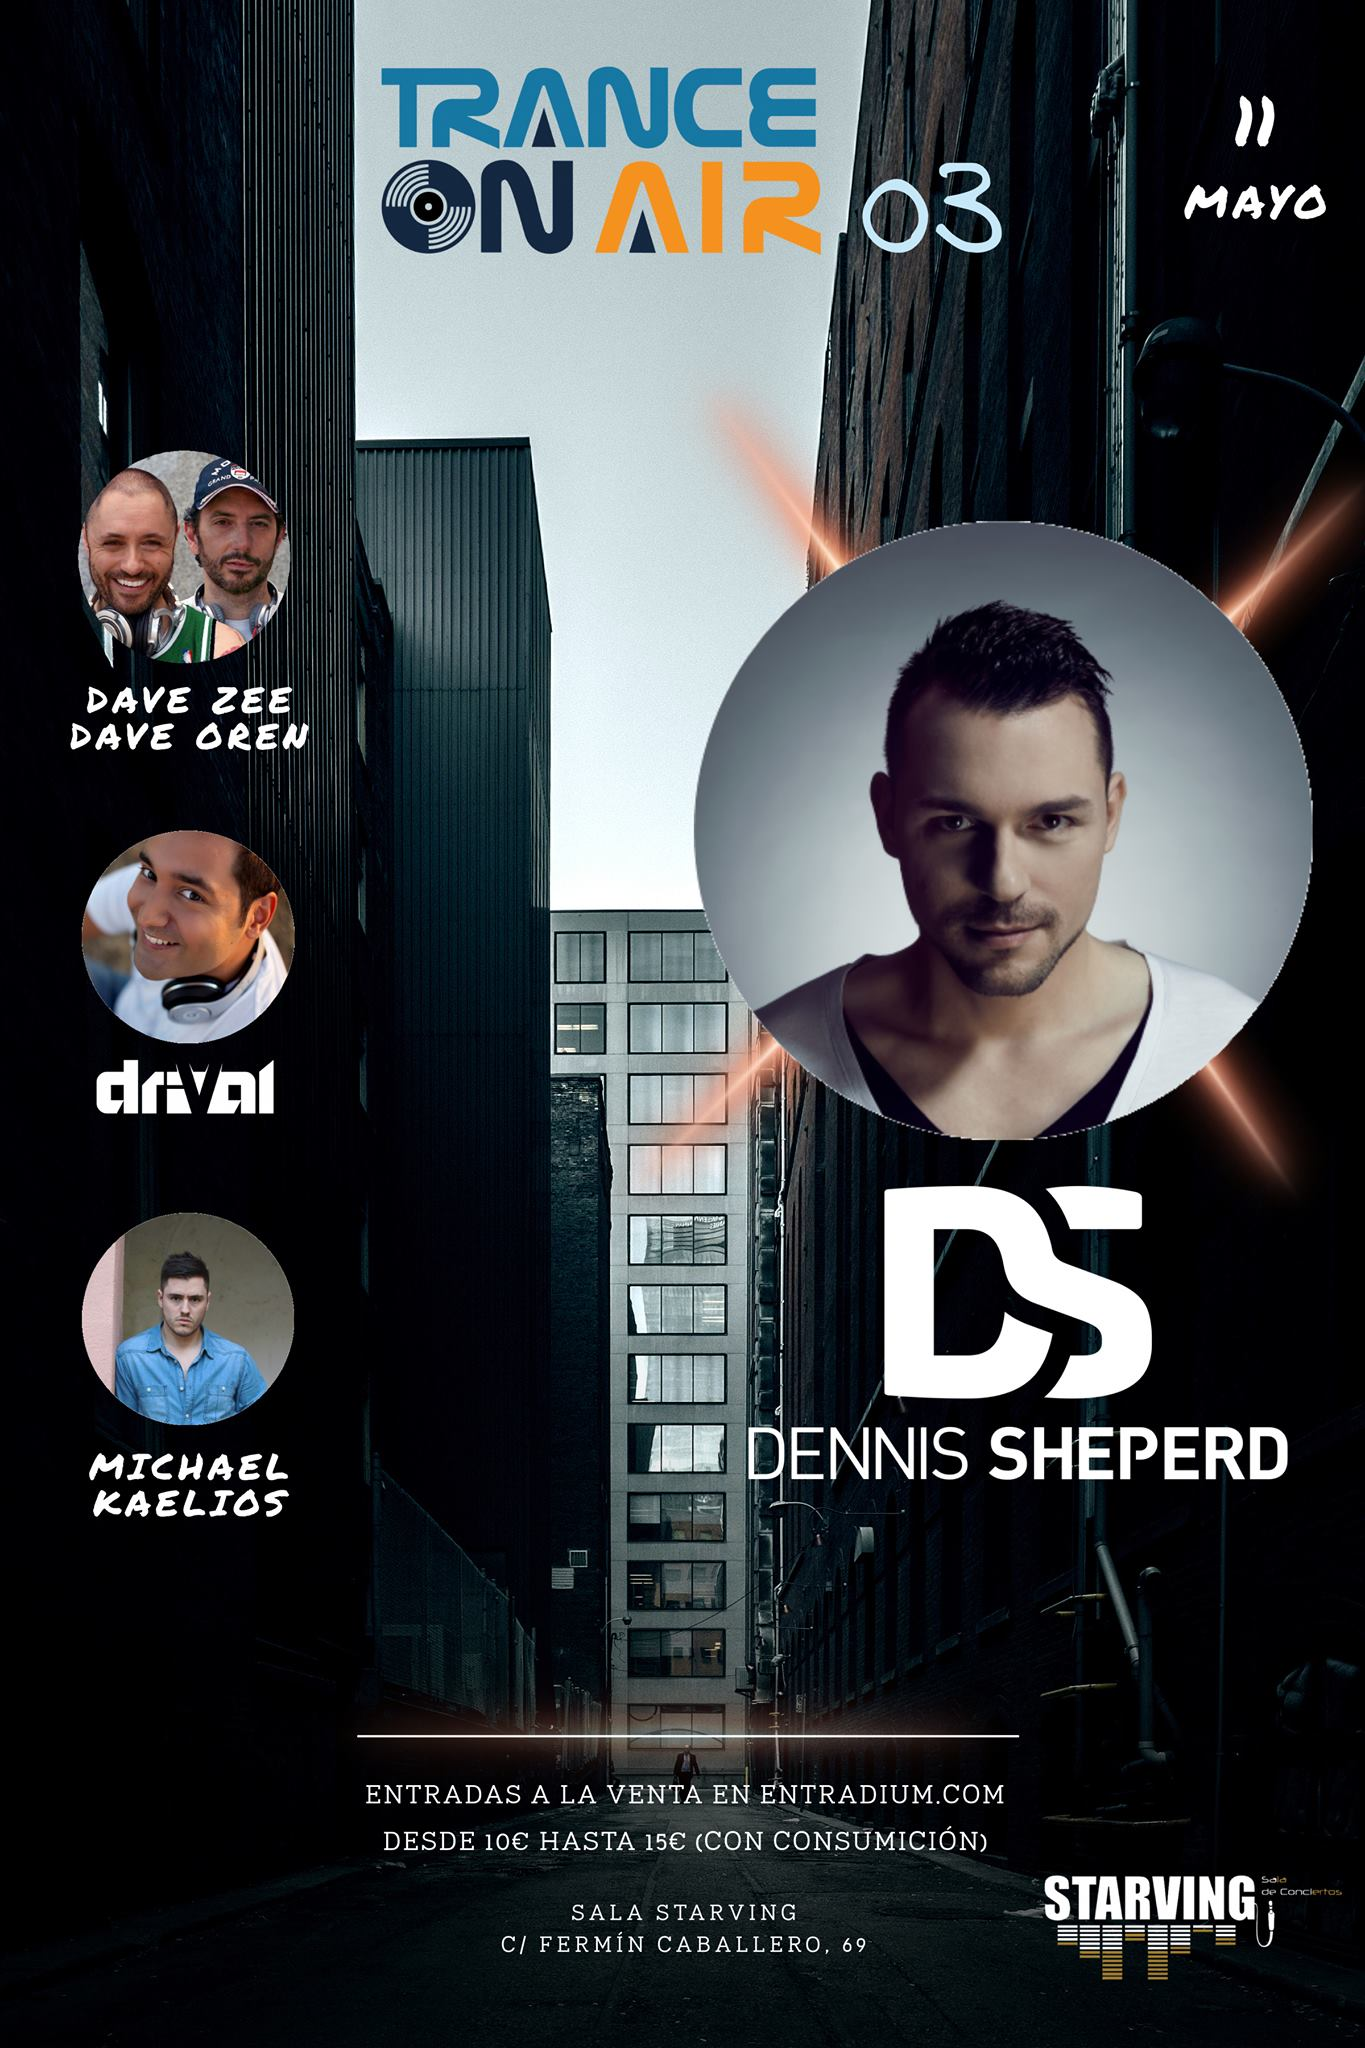 Trance on Air 03 con Dennis Sheperd y Michael Kaelios